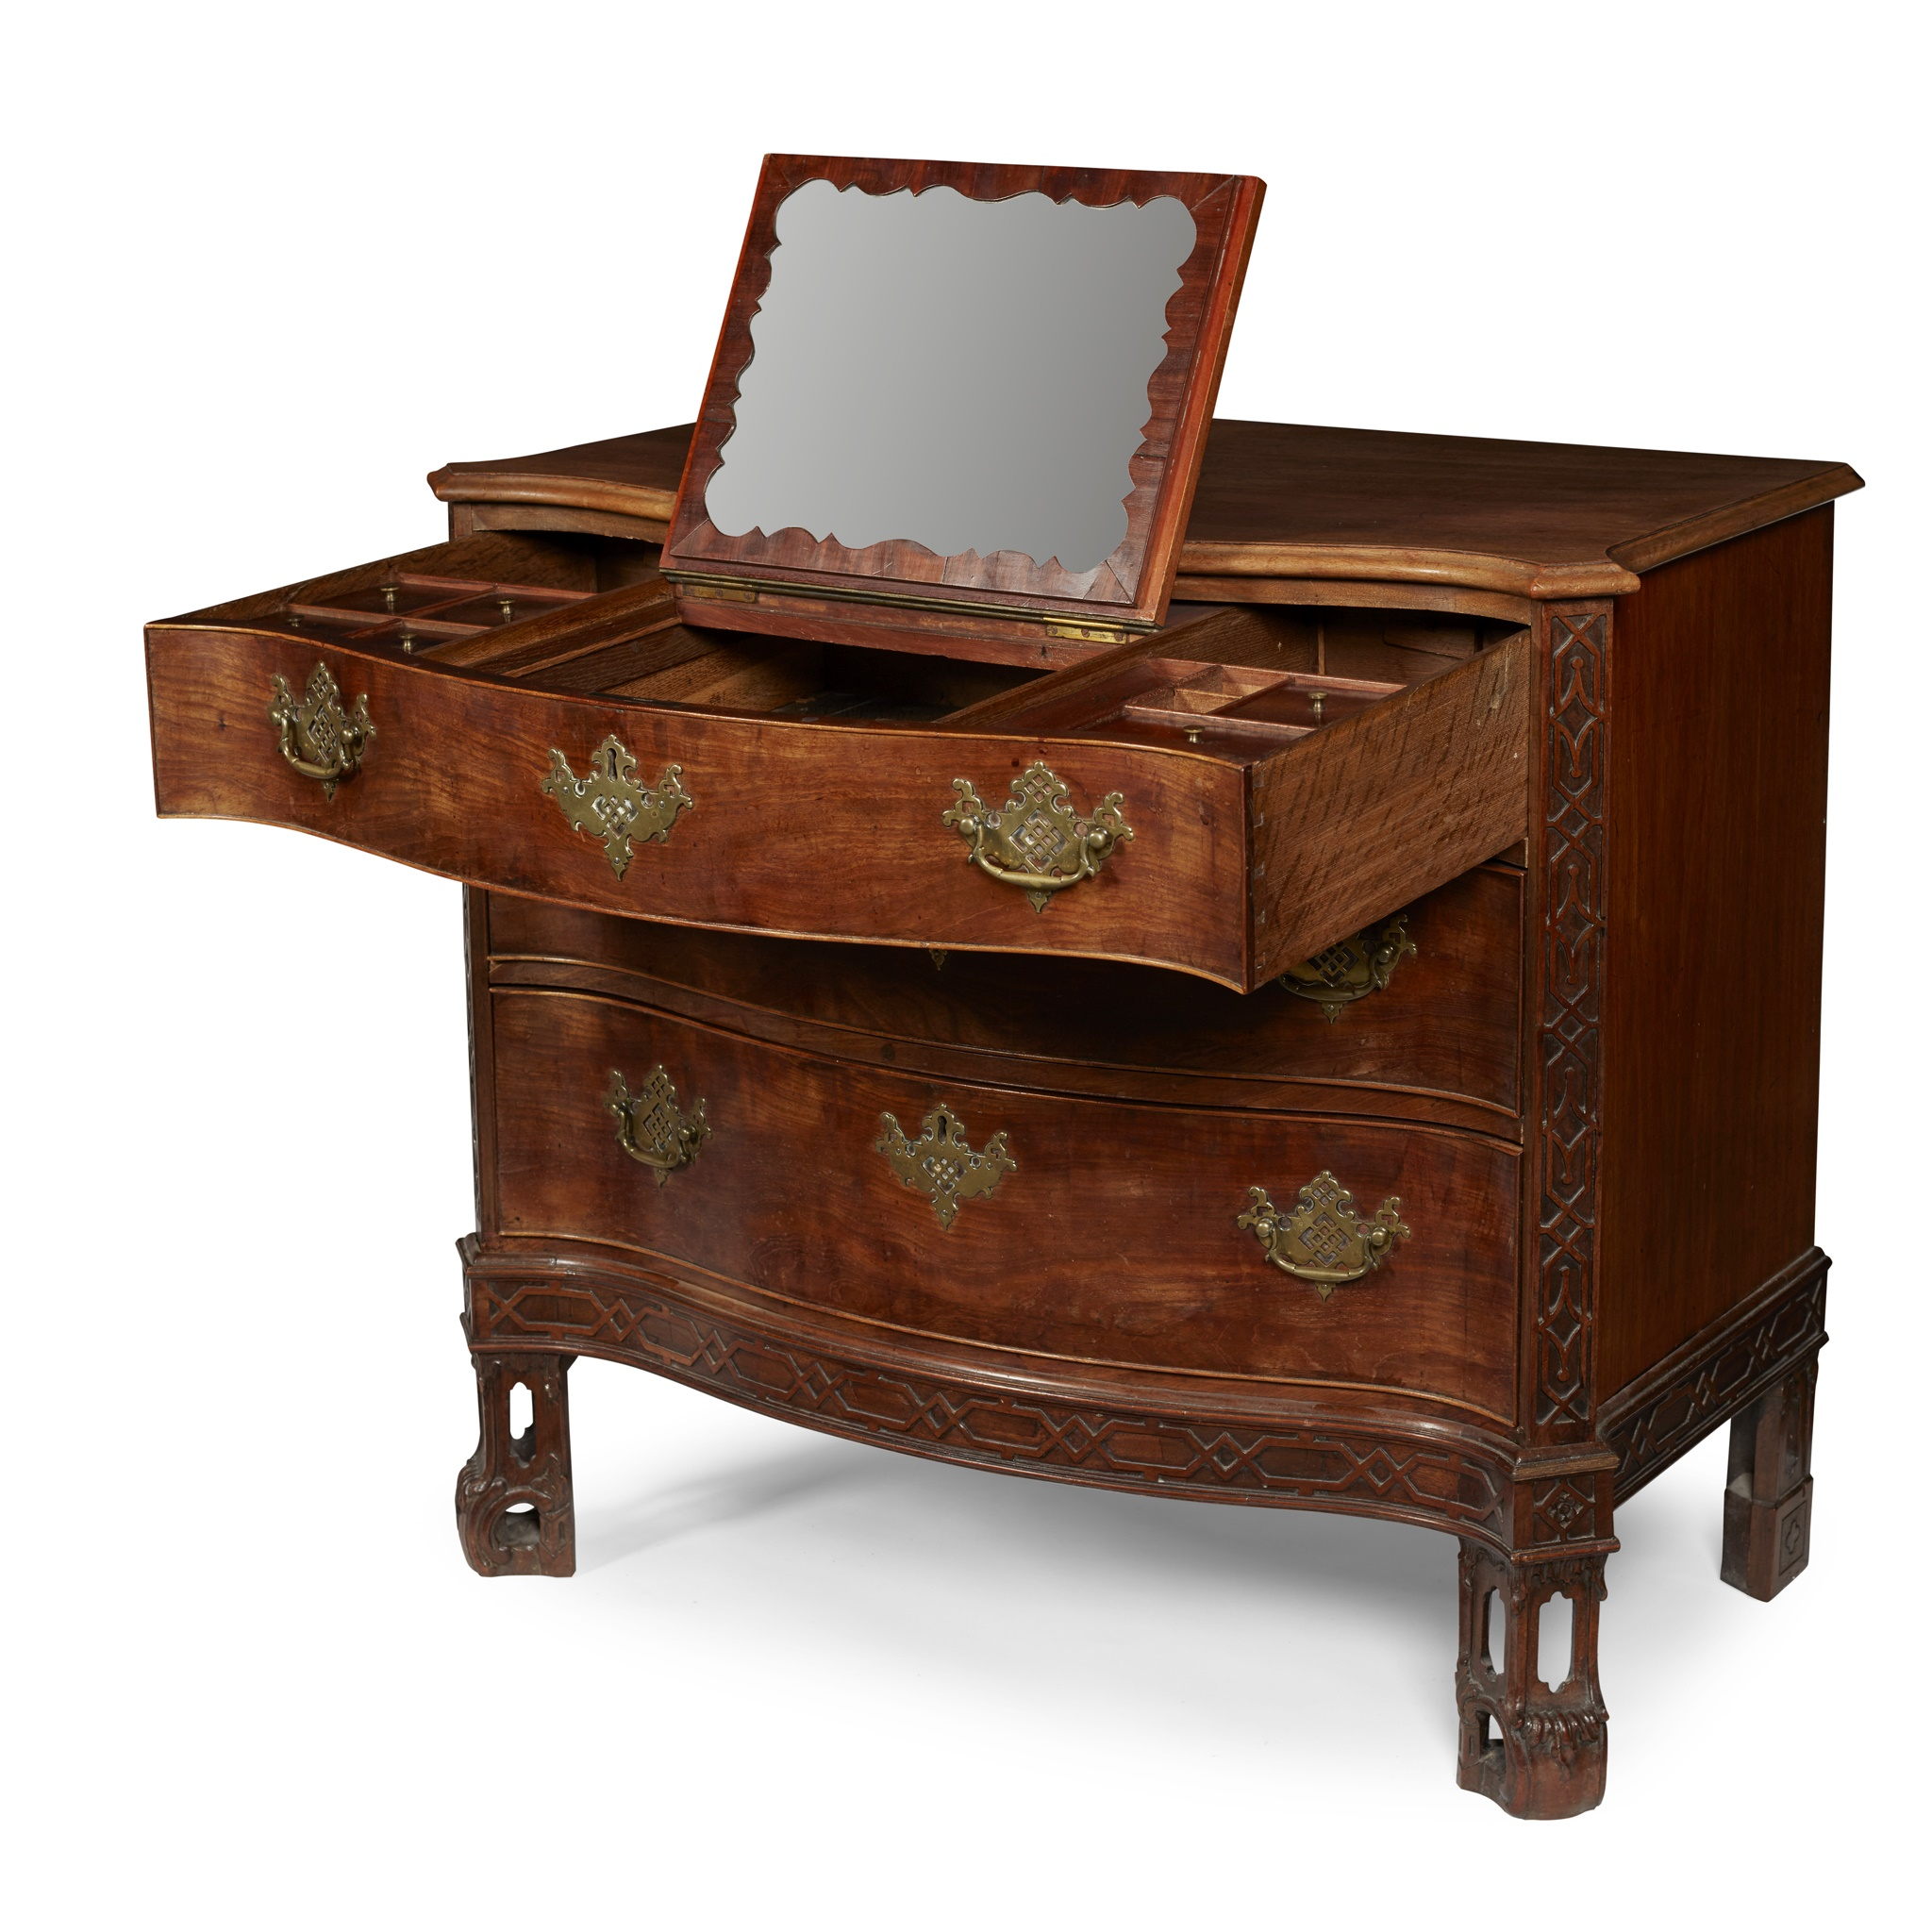 GEORGE III SERPENTINE CHEST OF DRAWERS MID 18TH CENTURY AND LATER - Image 6 of 6